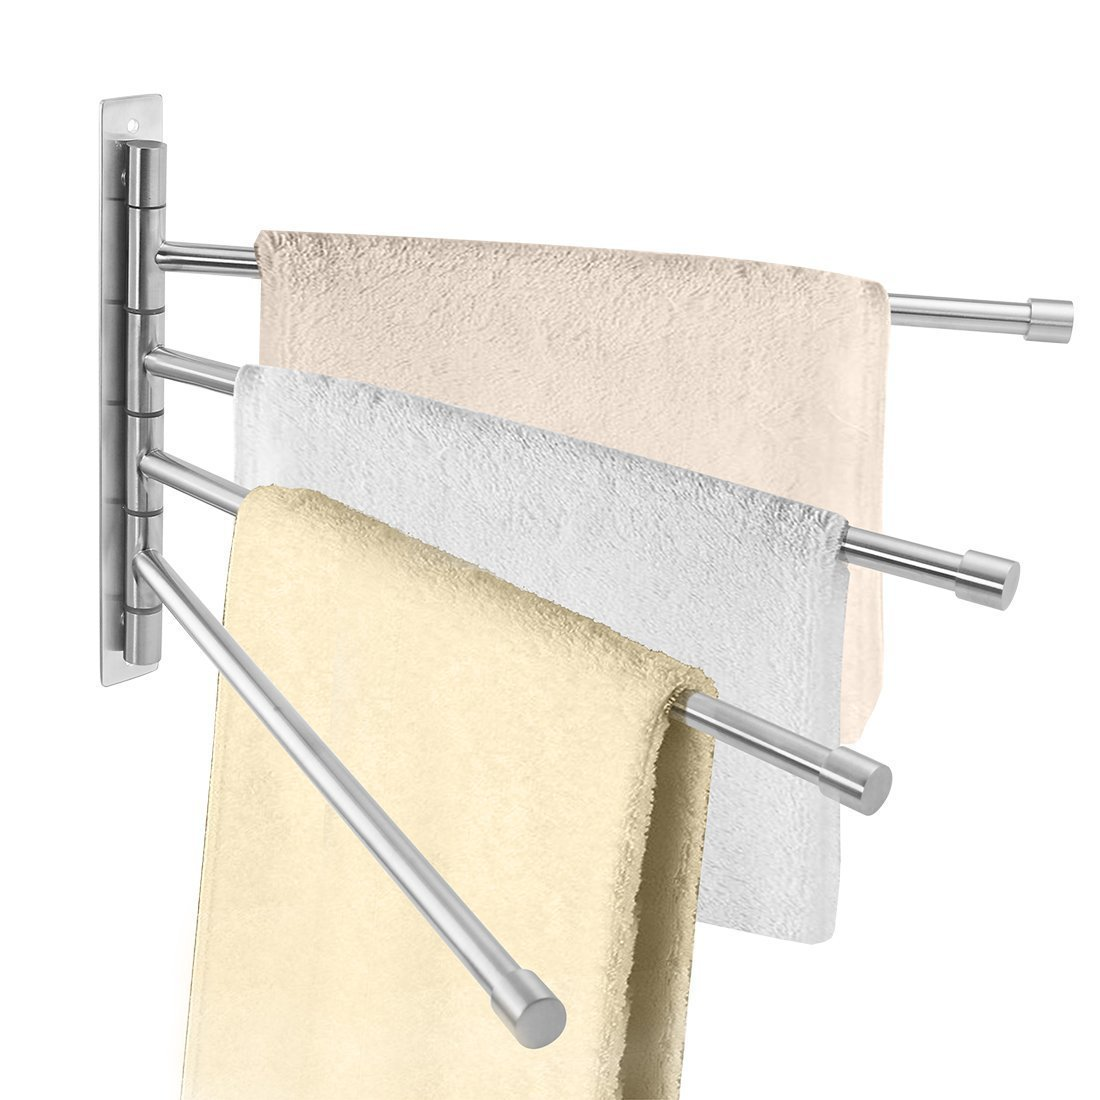 Goodfure SUS 304 Stainless Steel Swing Out Towel Bar 4-Bar Folding Arm Swivel Hanger Bathroom Storage Organizer Space Saving Wall Mount, Brushed Finish